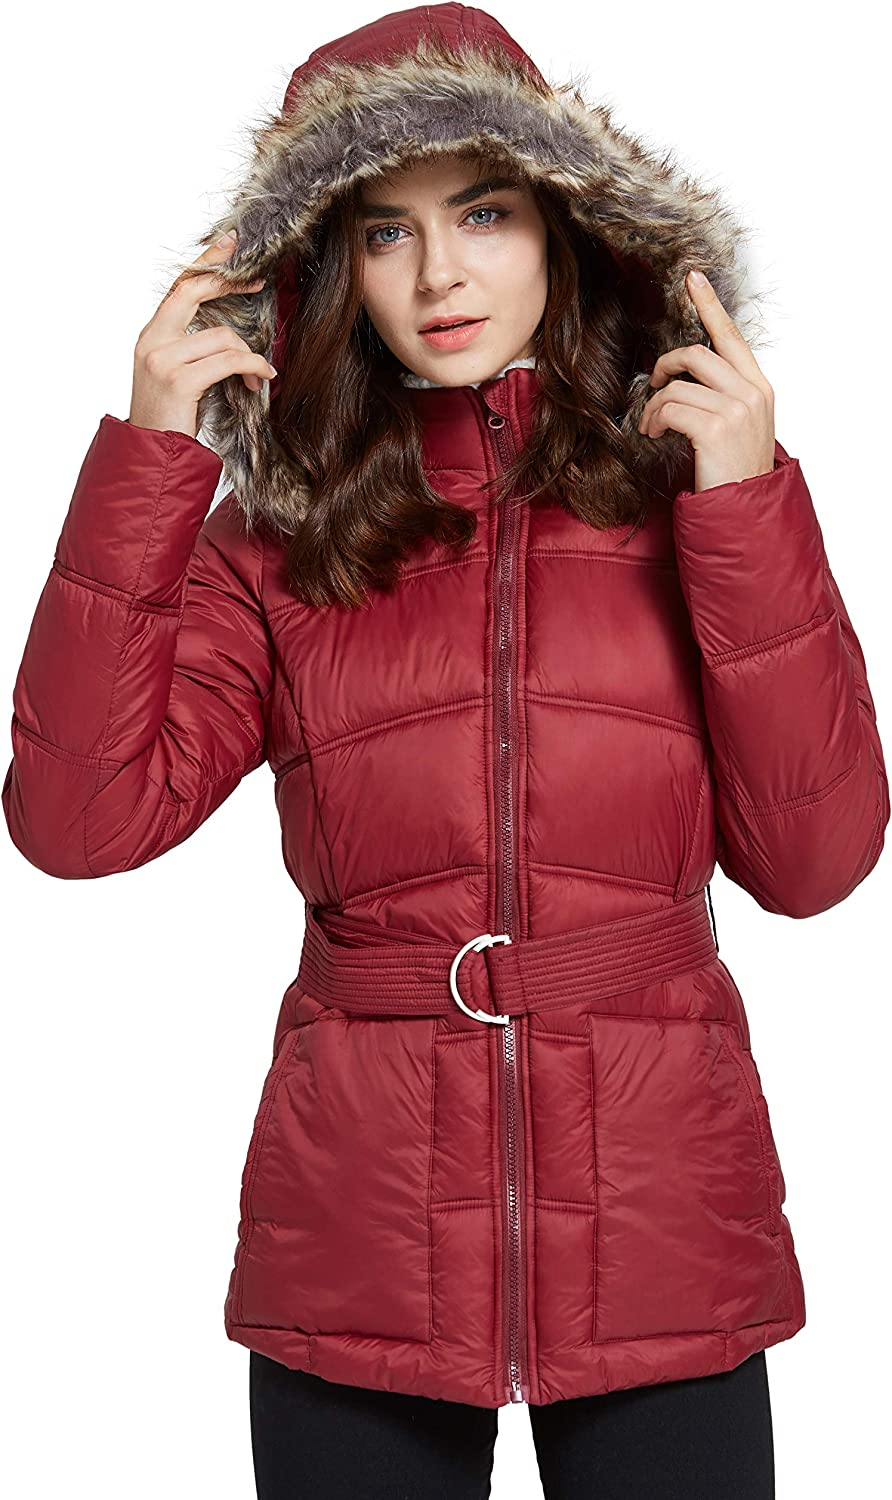 SVACUAM Women's Quilted Puffer Jacket with Removable Faux Fur Trim and Belted(Wine Red,XXL)